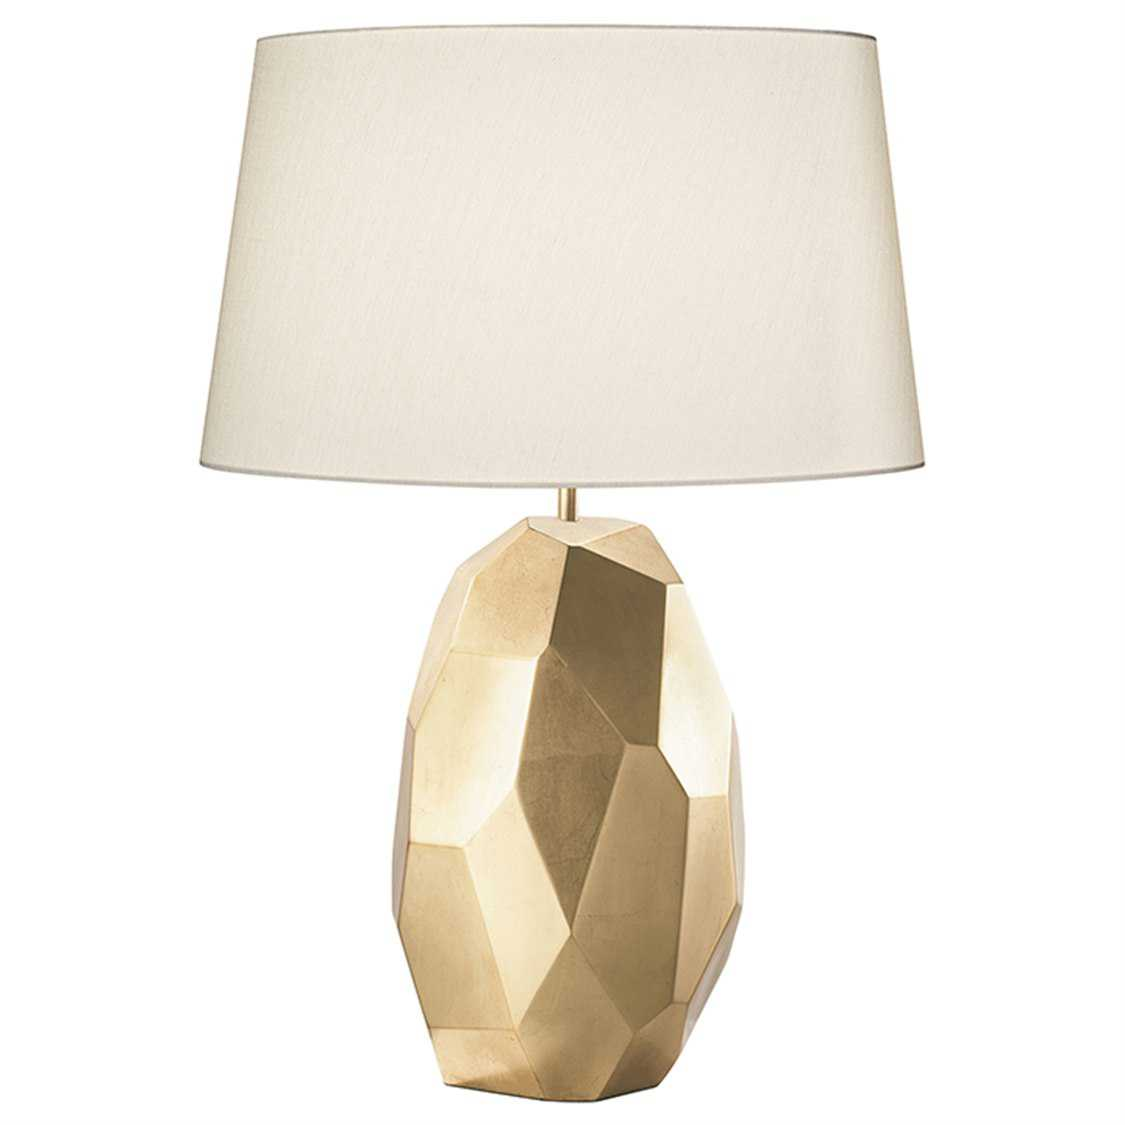 Fine Art Lamps Recollections 825910 2st Table Lamp